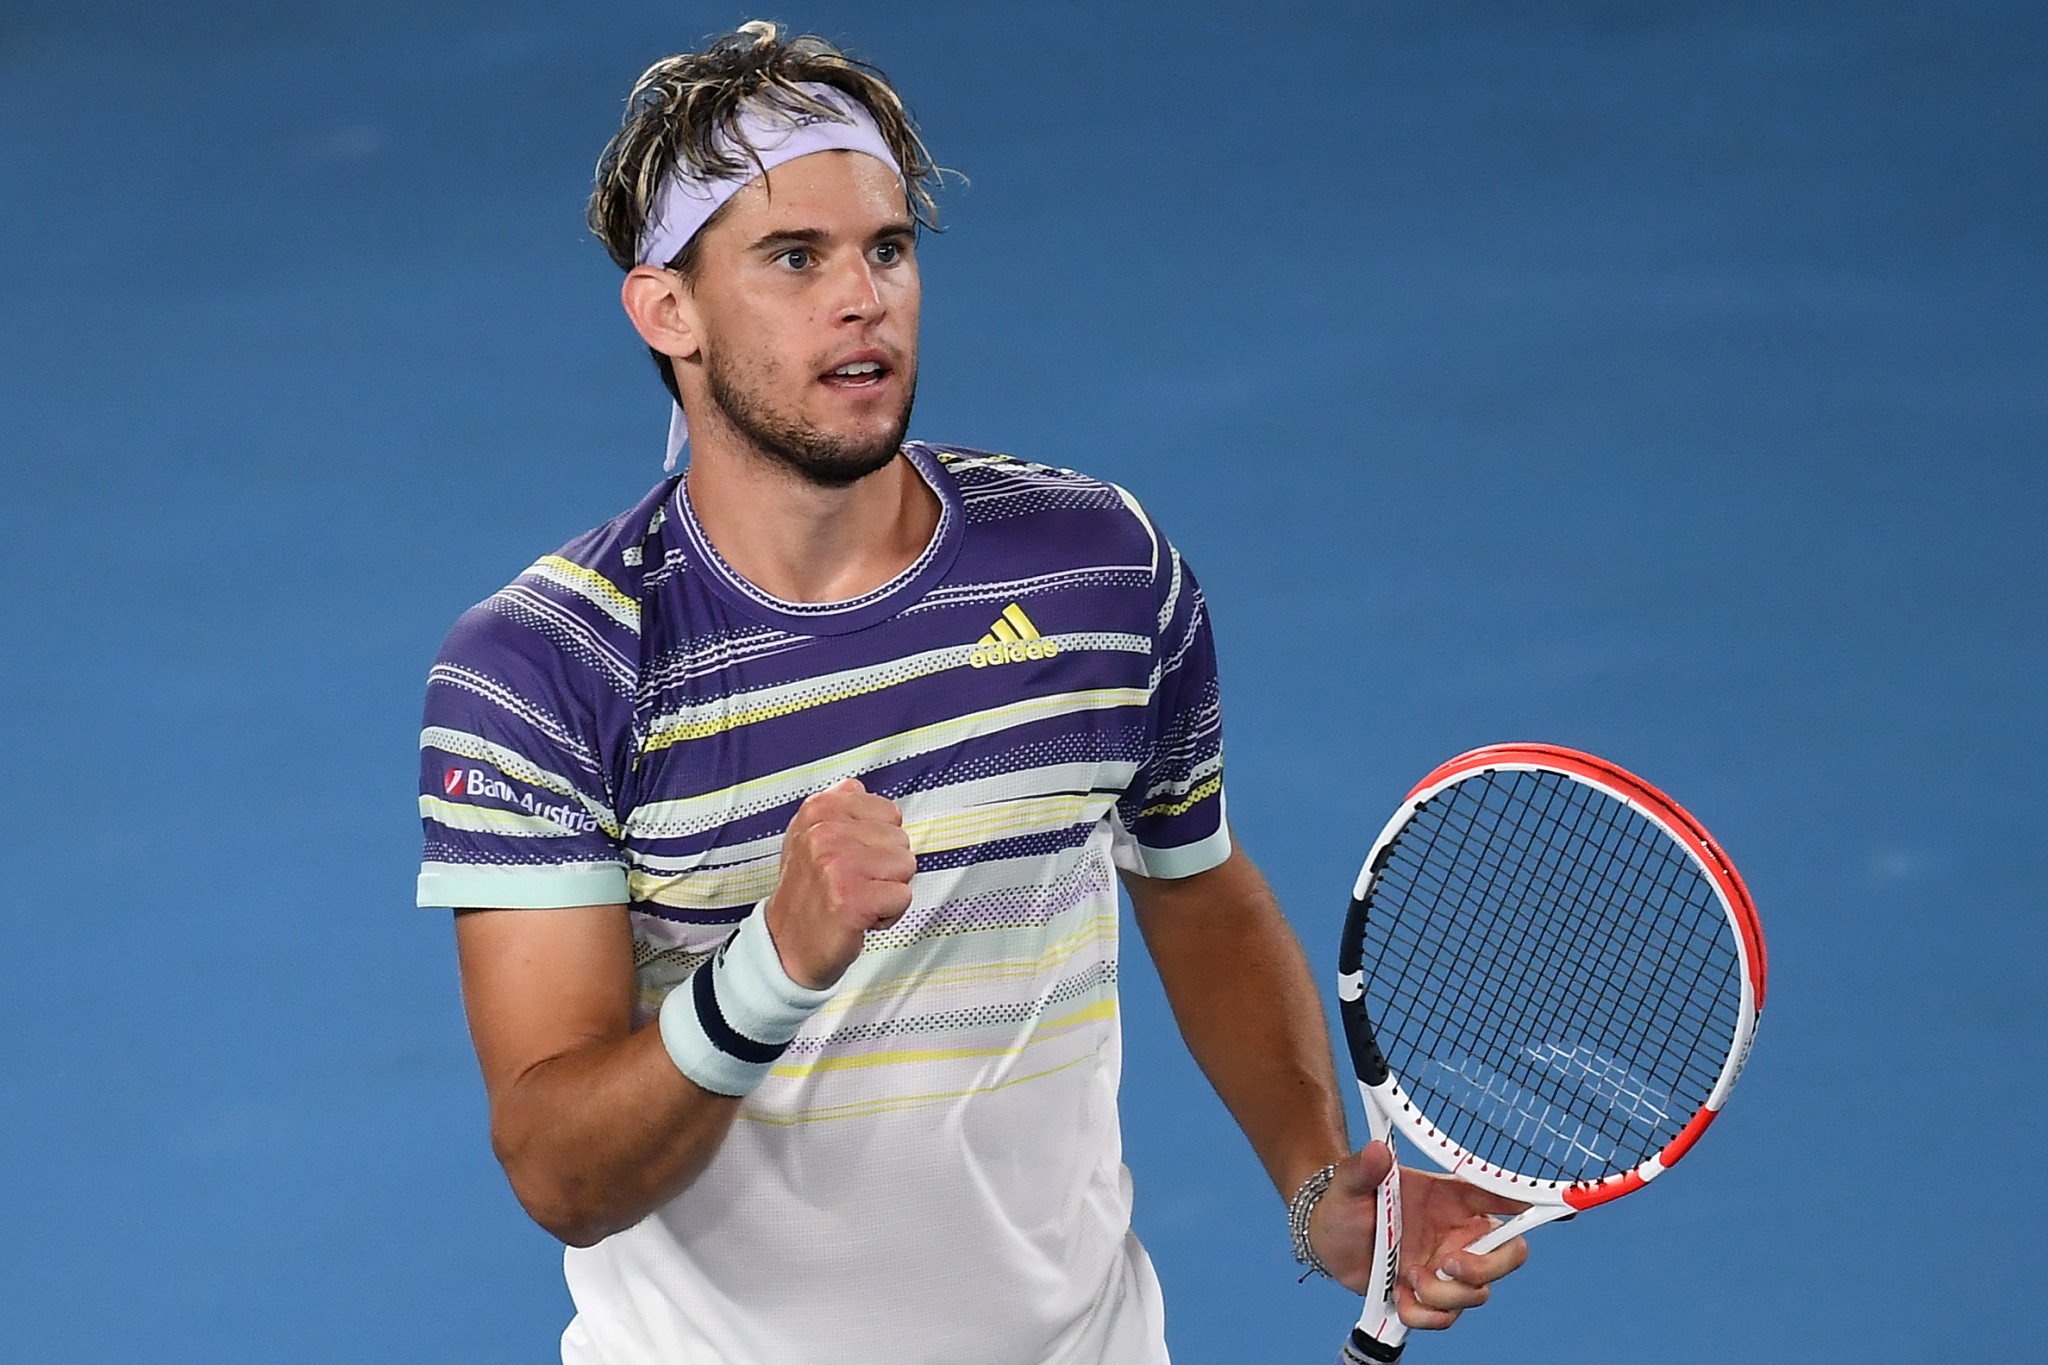 Thiem battles back against Zverev to book place in Australian Open final